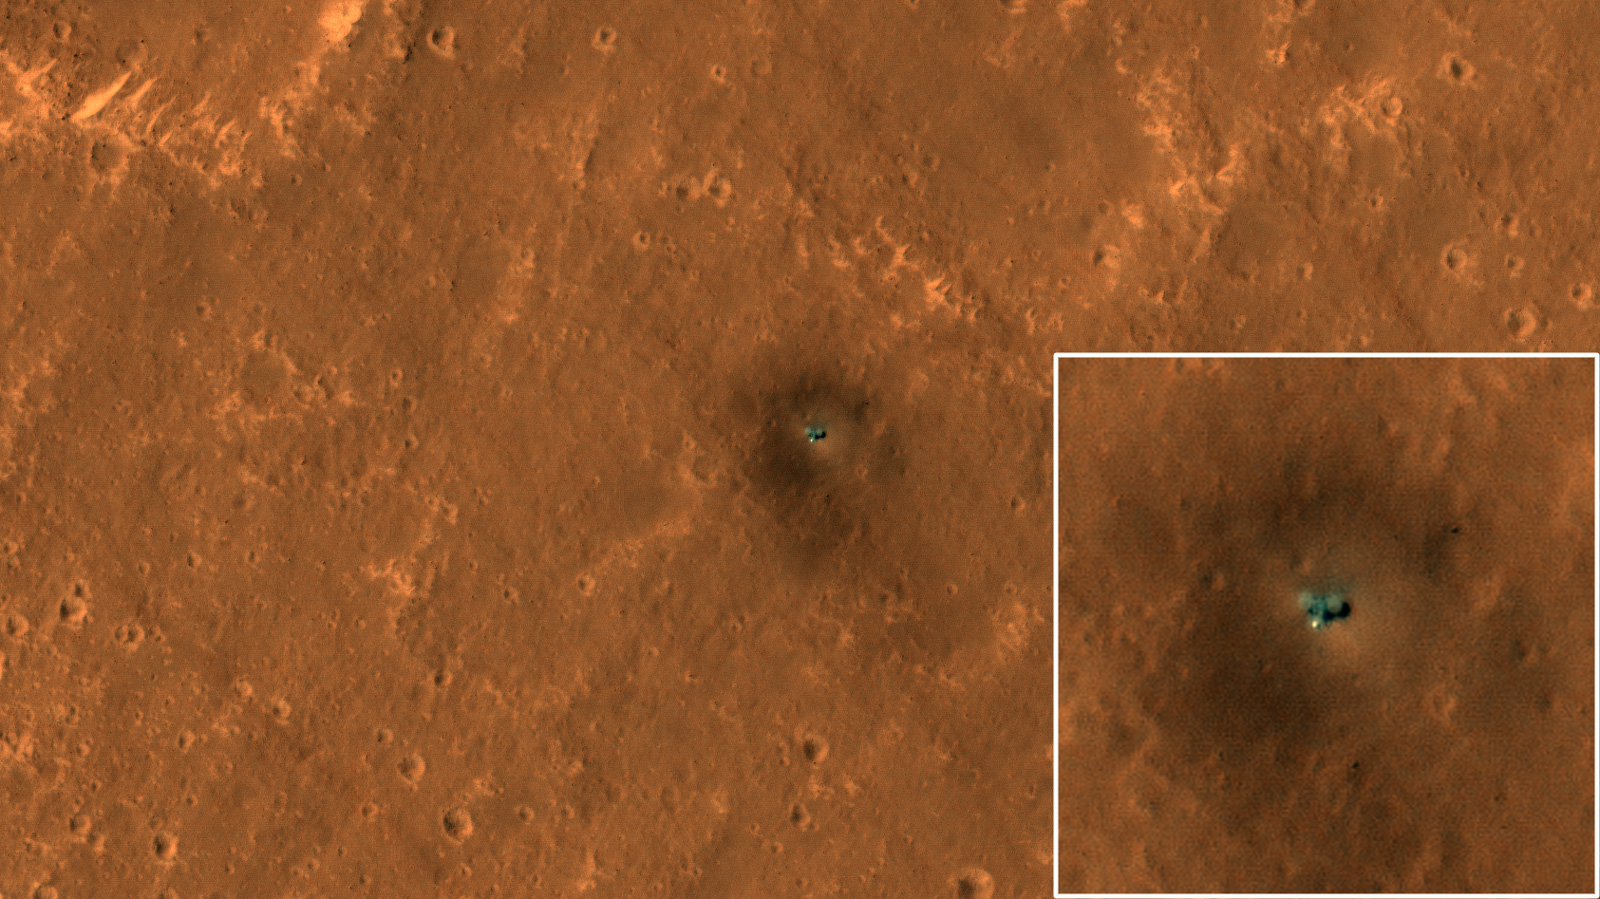 The HiRISE camera on NASA's Mars Reconnaissance Orbiter got its best view yet of the InSight lander on September 23, 2019.